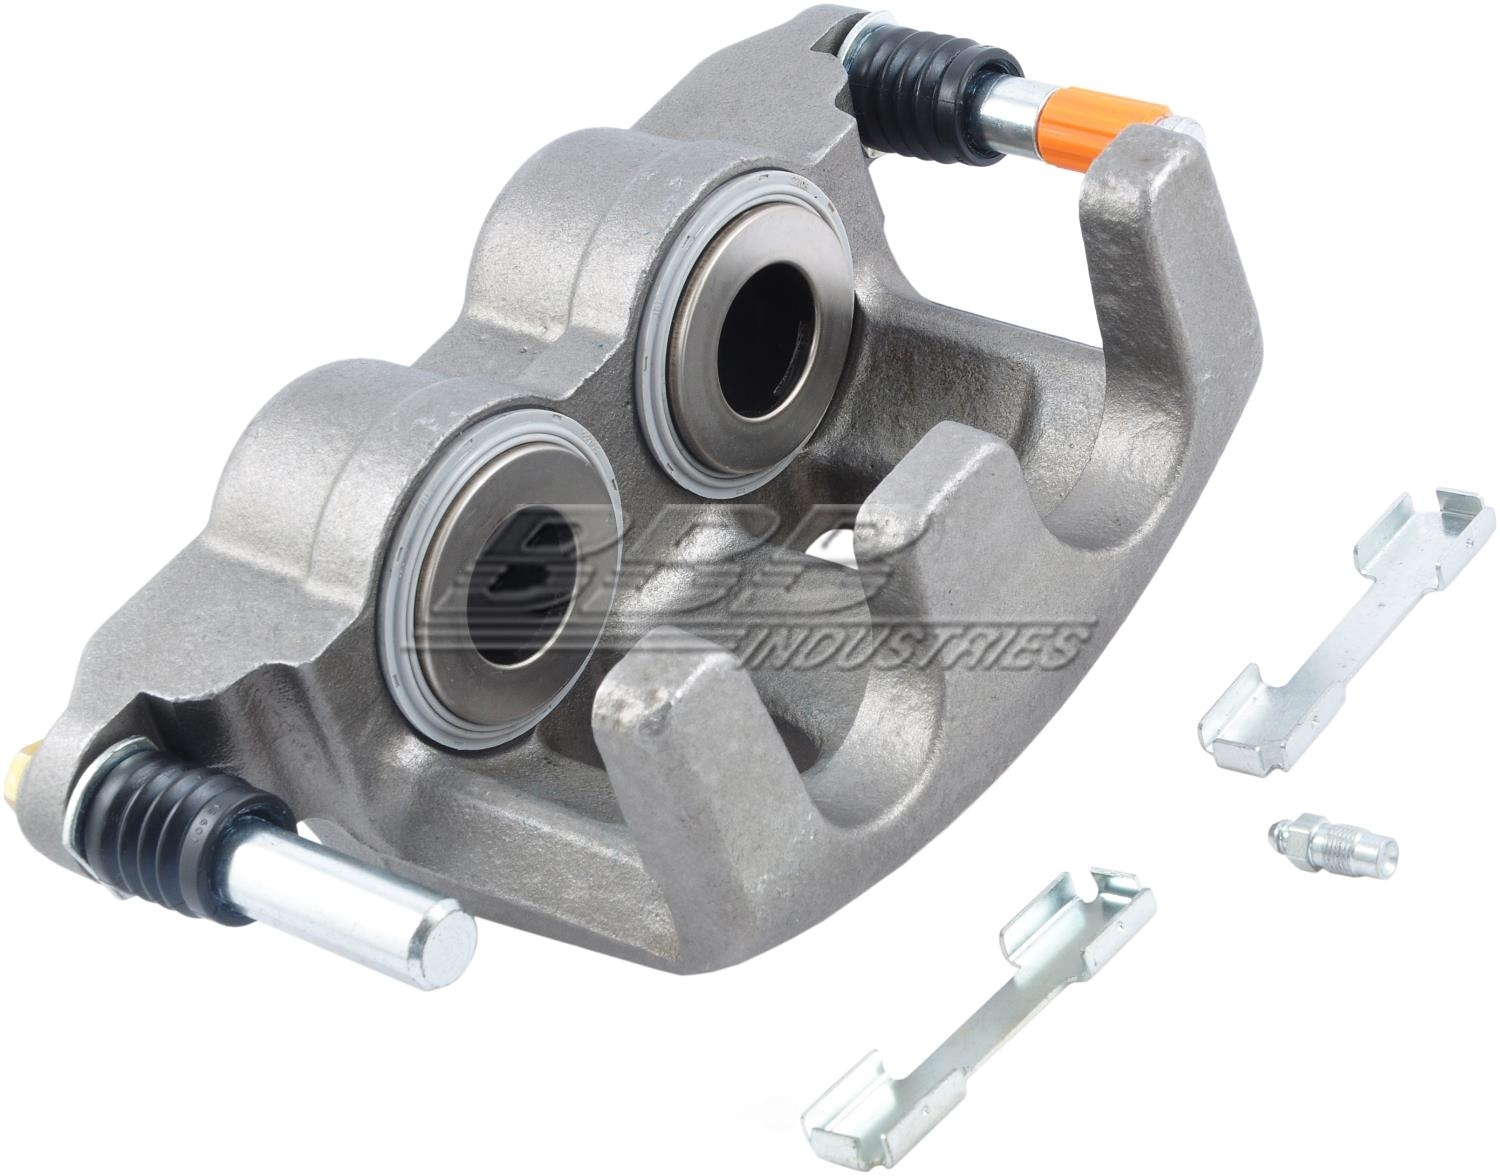 BBB INDUSTRIES - Reman Caliper w/Installation Hardware - BBA 97-17010D